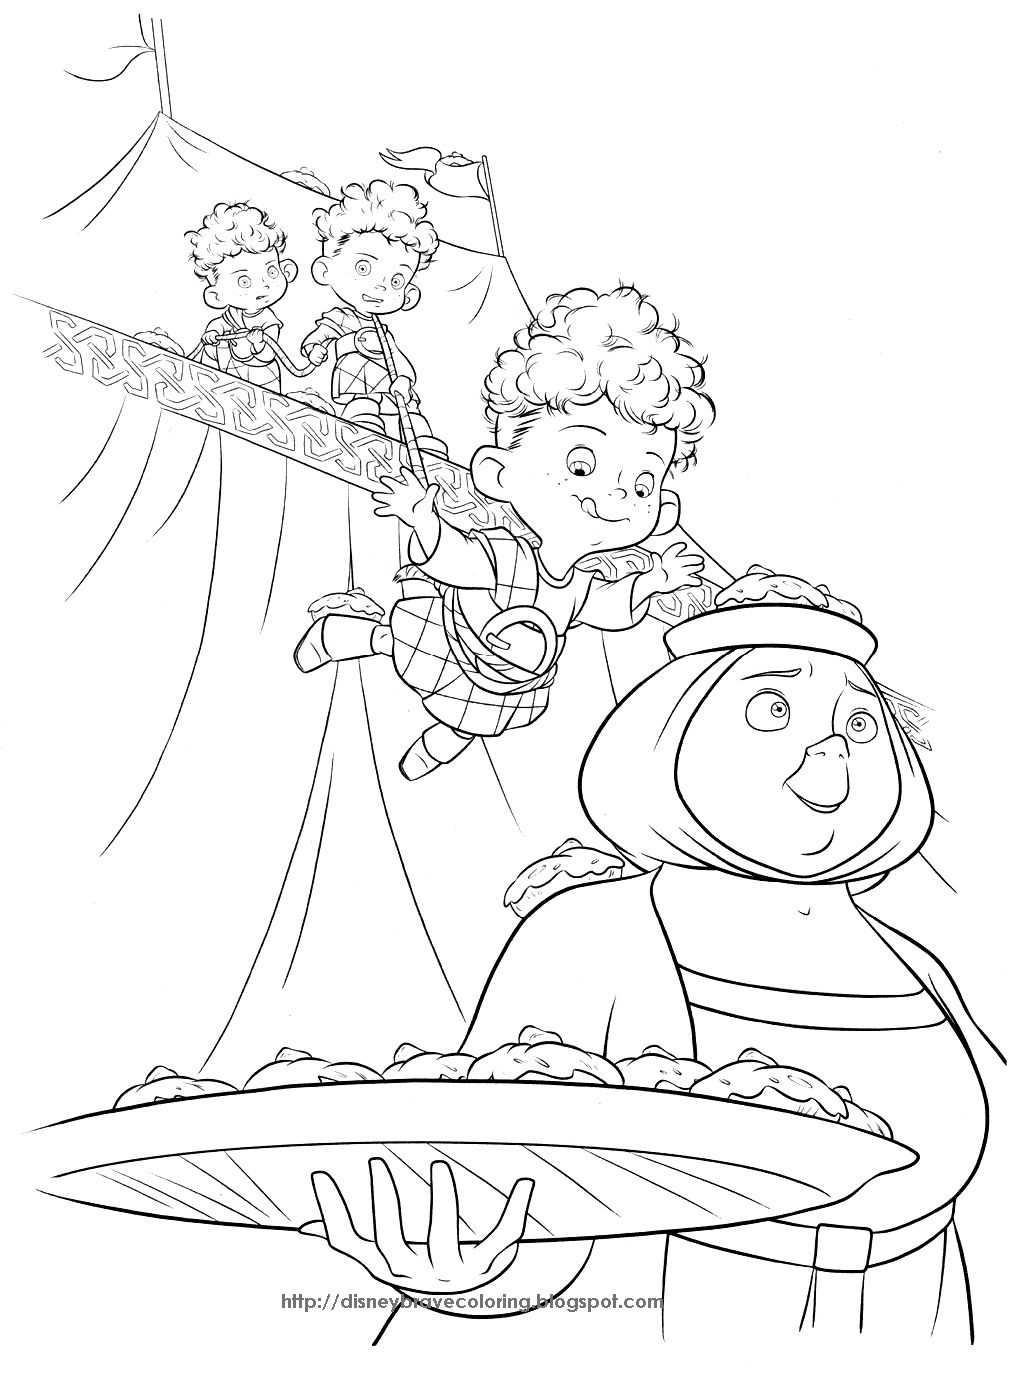 PRINCESS COLORING PAGES: BRAVE COLORING PAGES OF MERIDA | Coloring ...